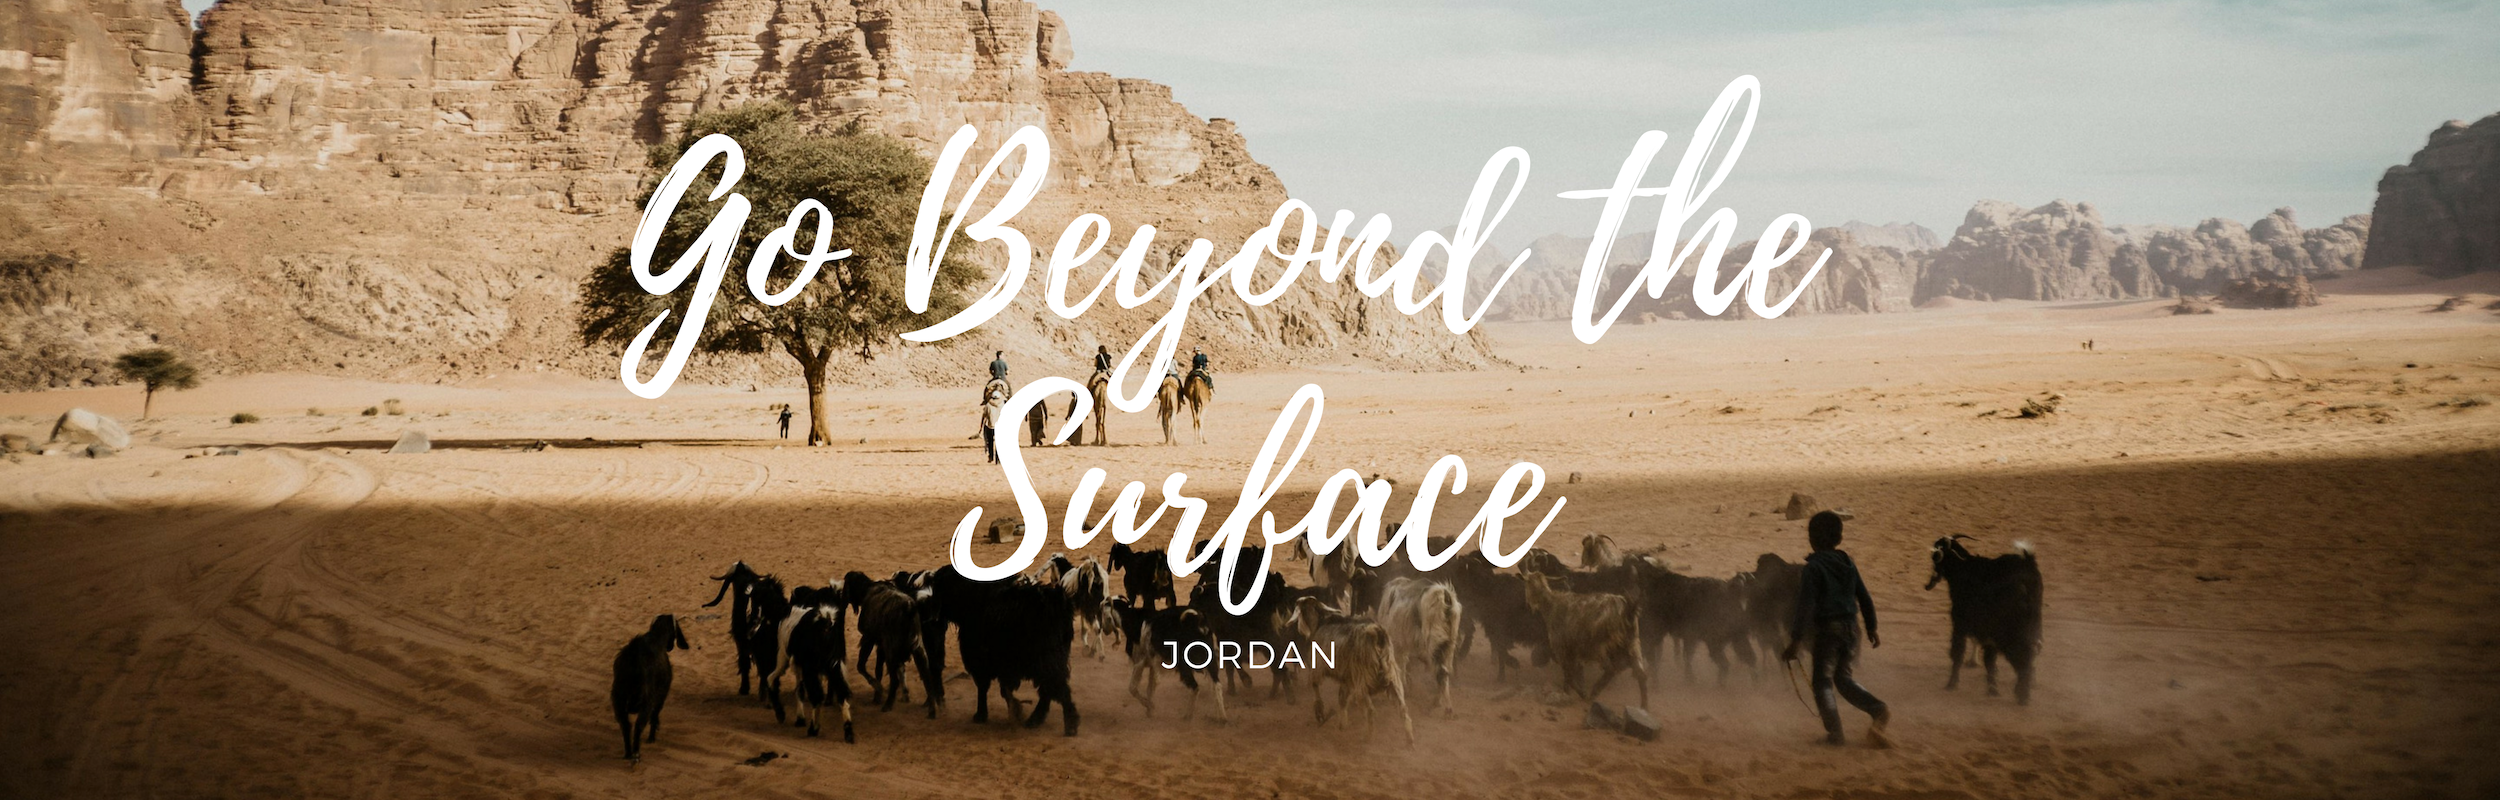 Unforgettable Feynan and Customizing a Private Tour of Jordan